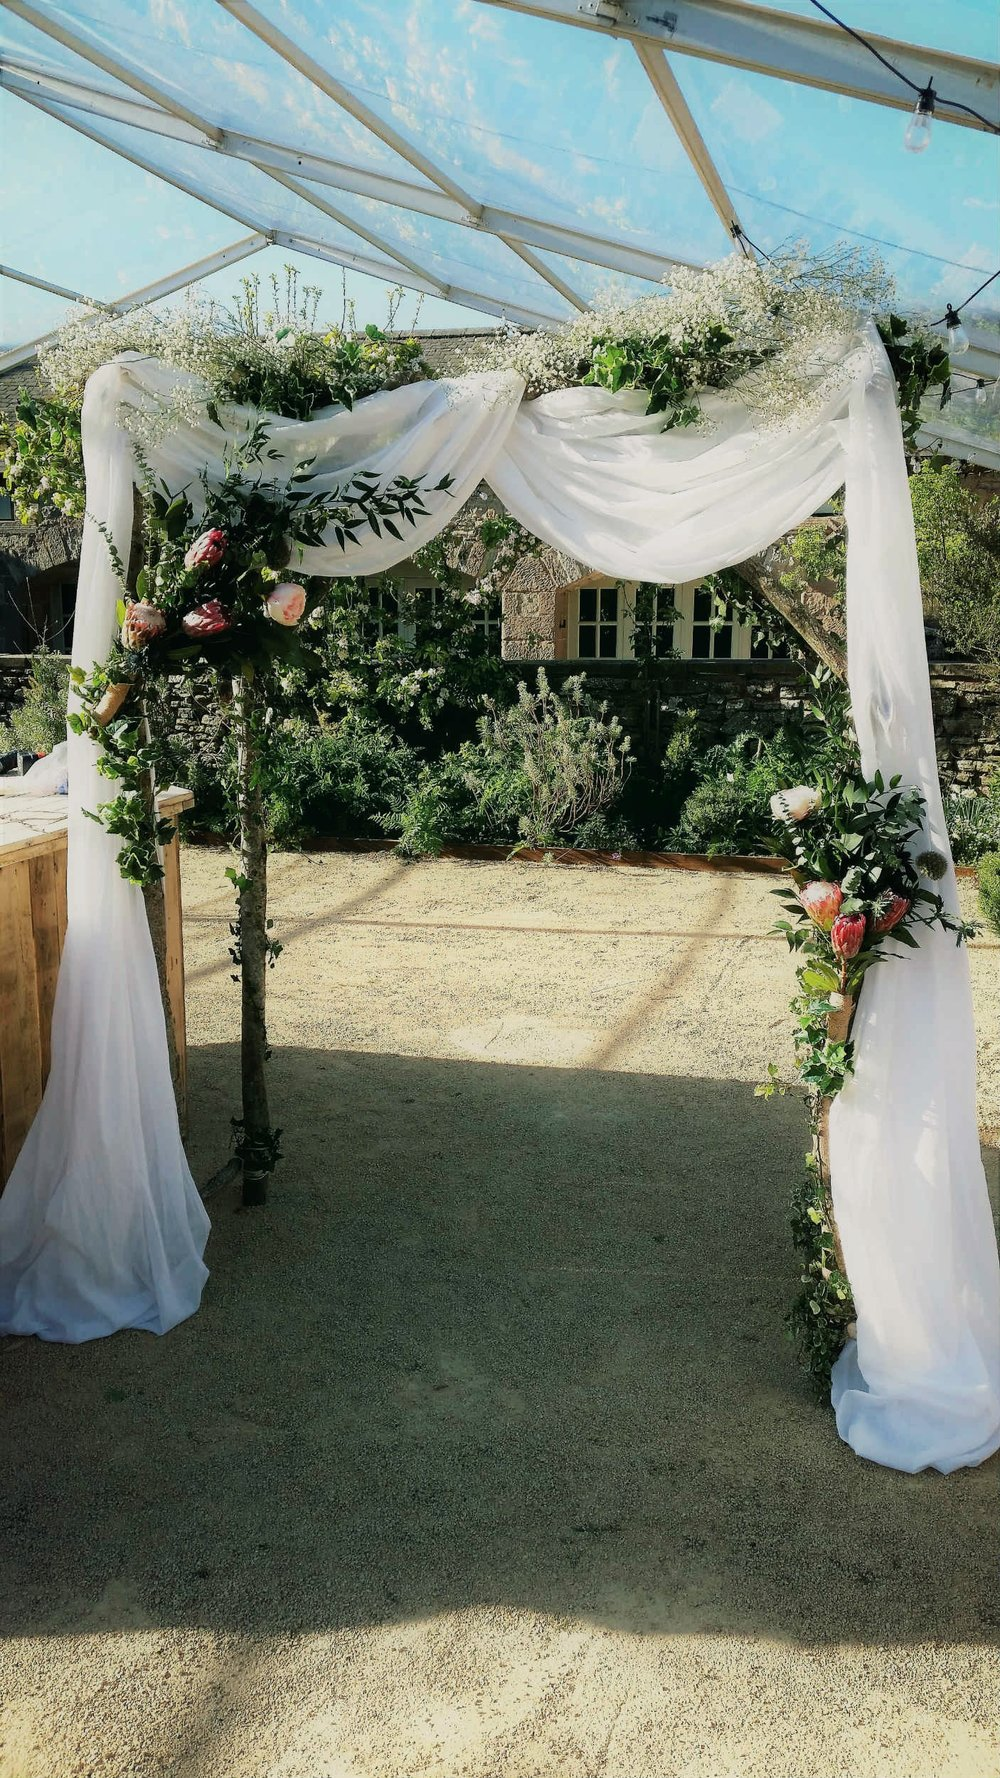 Copy of Copy of Rustic wedding arch hire styled